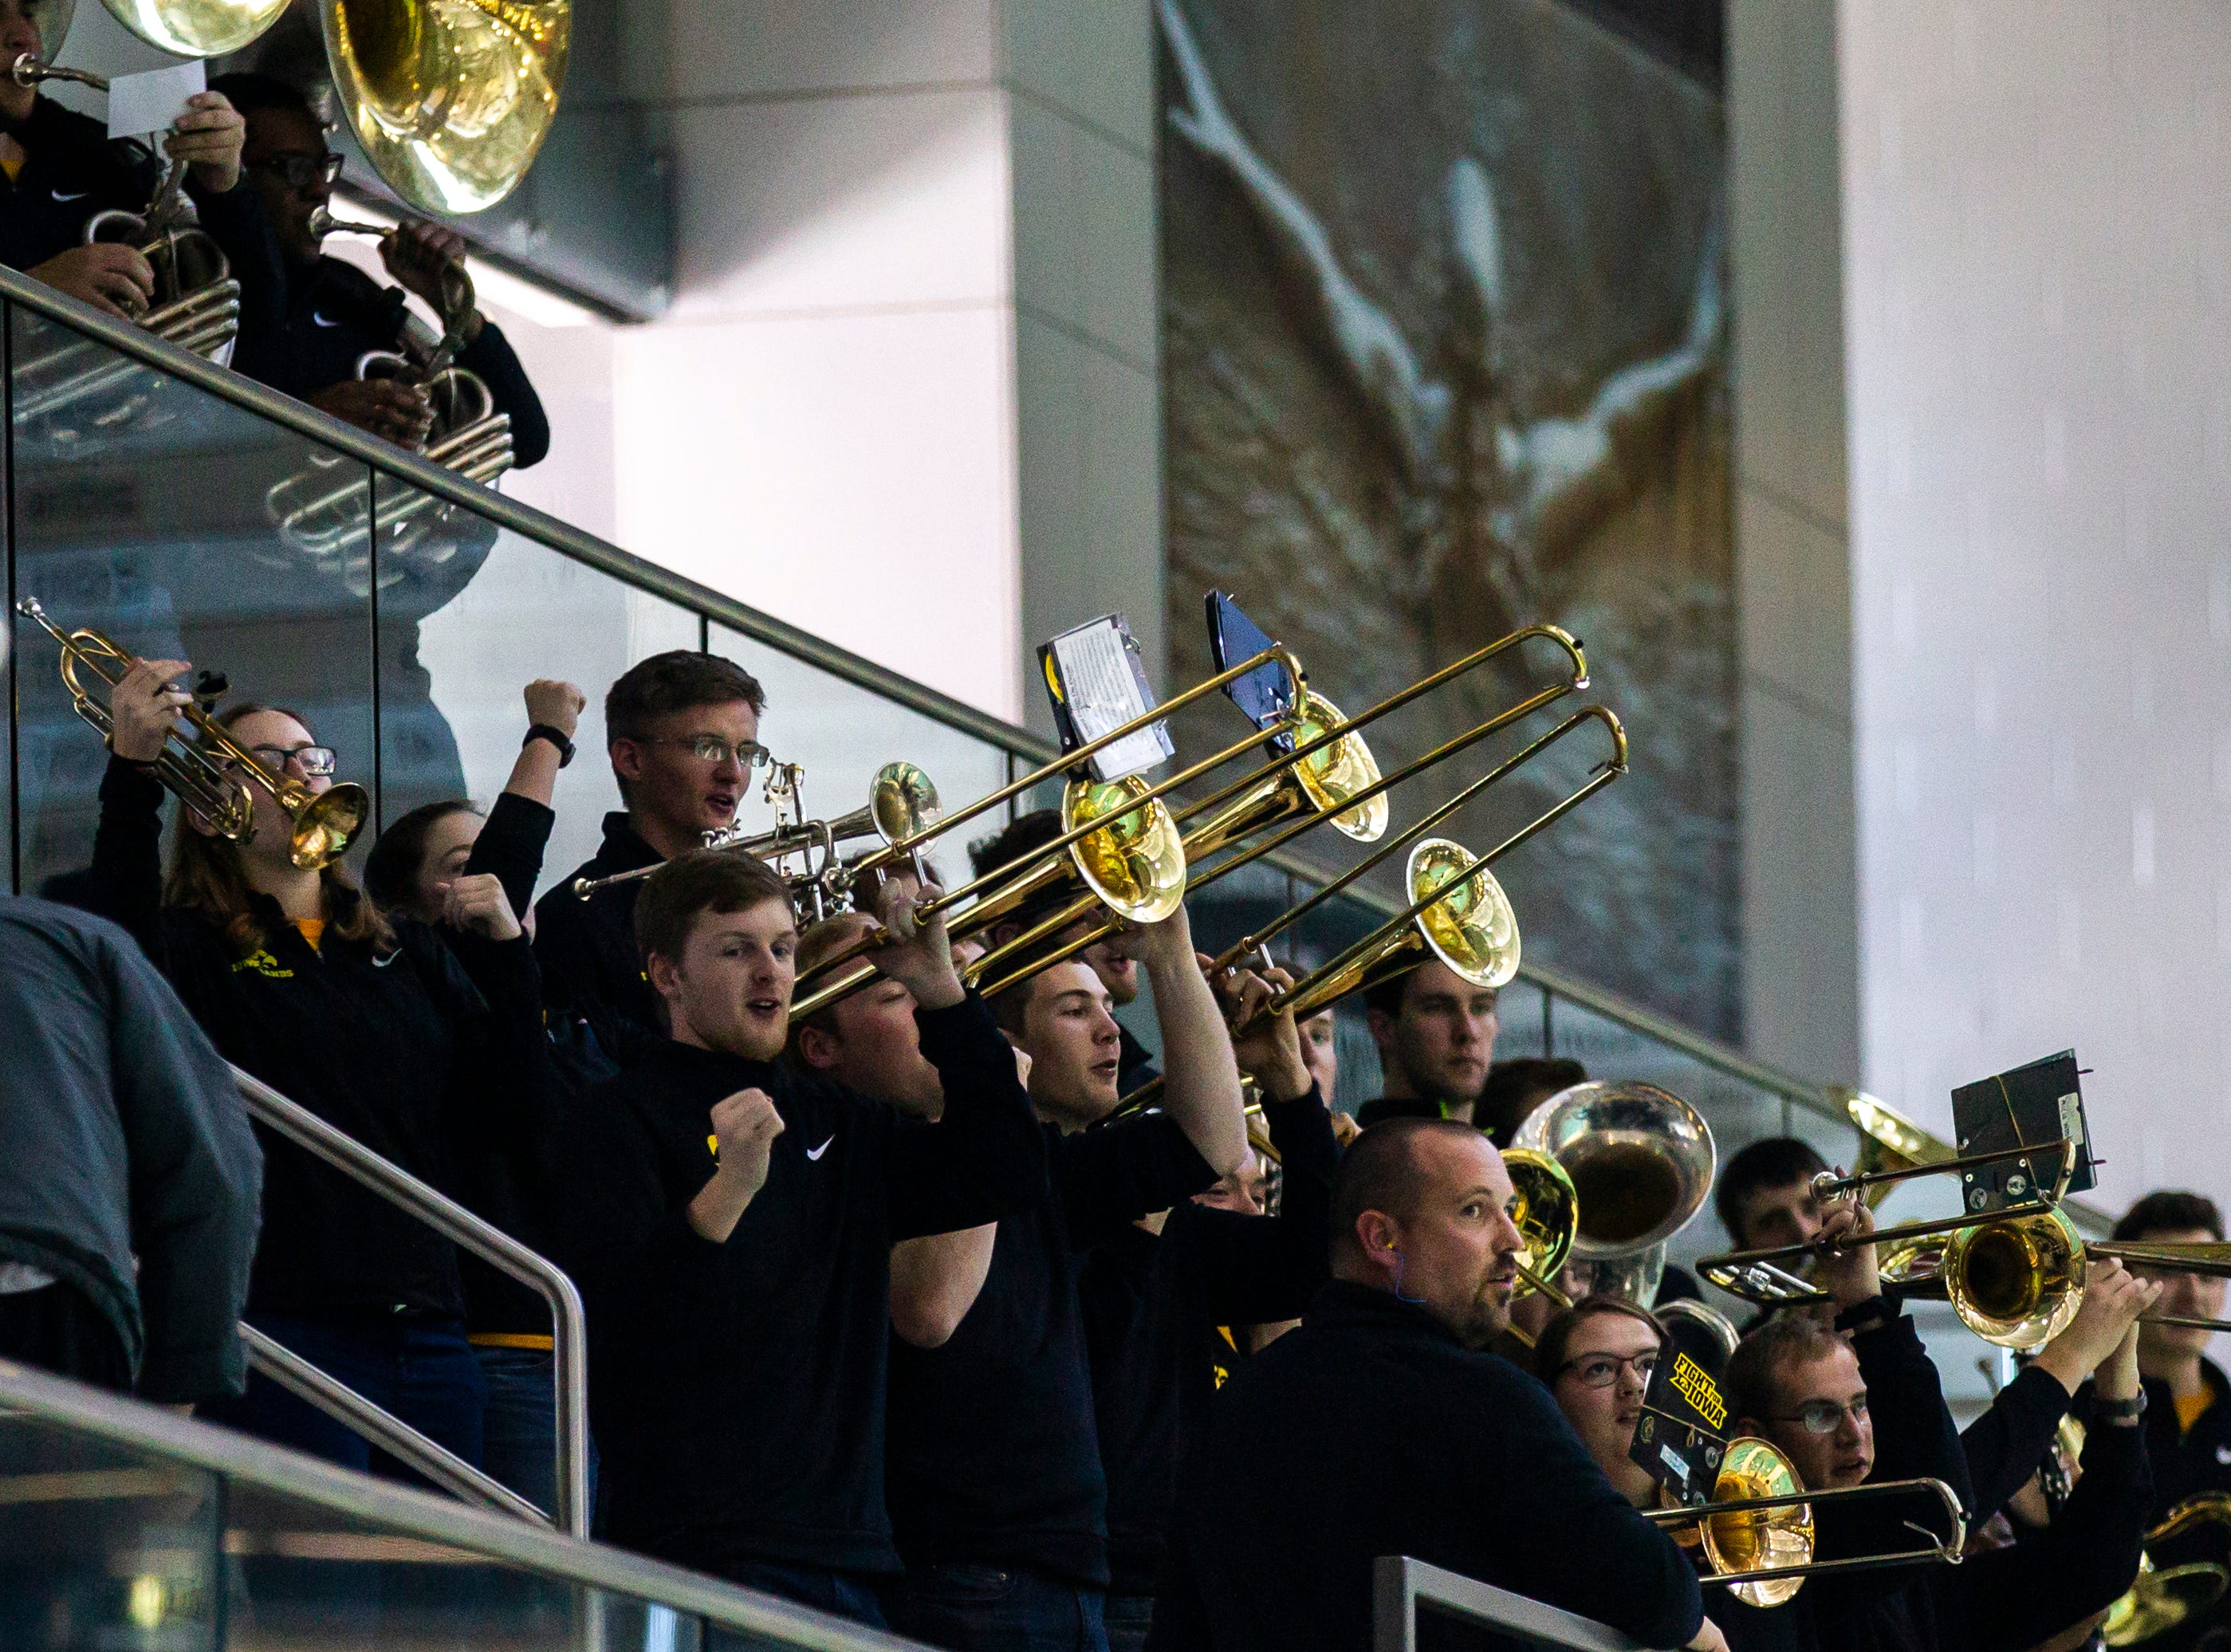 Members of the Iowa pep band perform during a NCAA Big Ten Conference swimming meet on Saturday, Jan. 19, 2019, at the Campus Recreation and Wellness Center in Iowa City, Iowa.